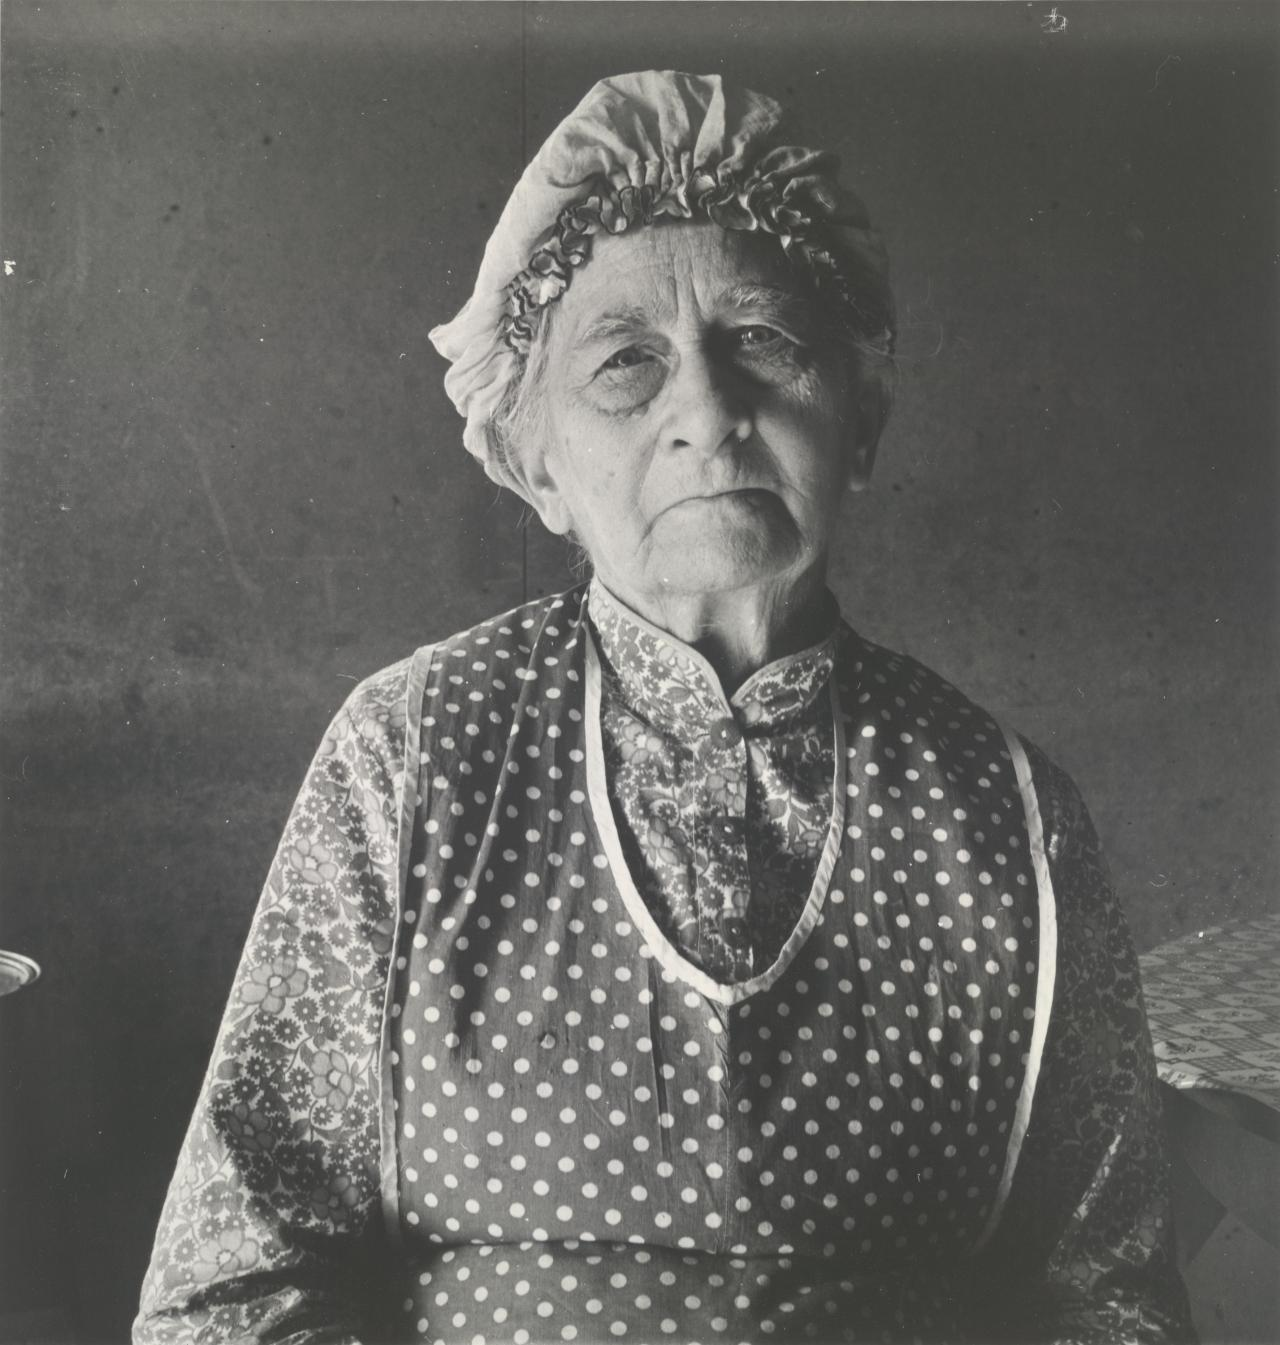 Resident at irrigation project, Malheur County, Oregon